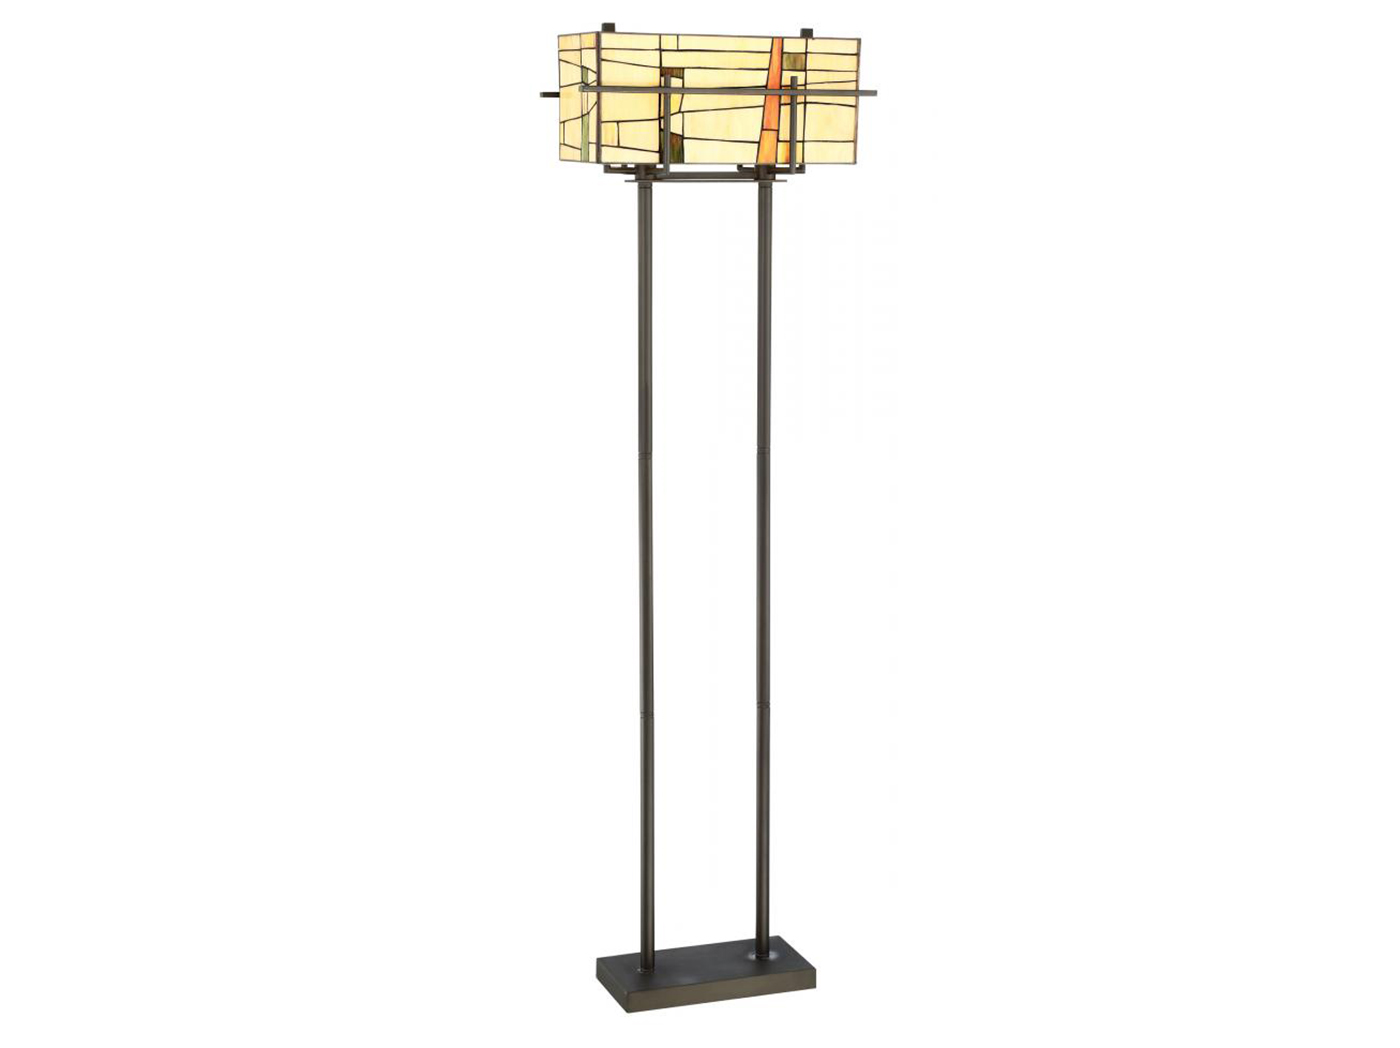 Tiffany style floor lamp 5975h steinhafels tiffany style floor lamp 5975h aloadofball Image collections